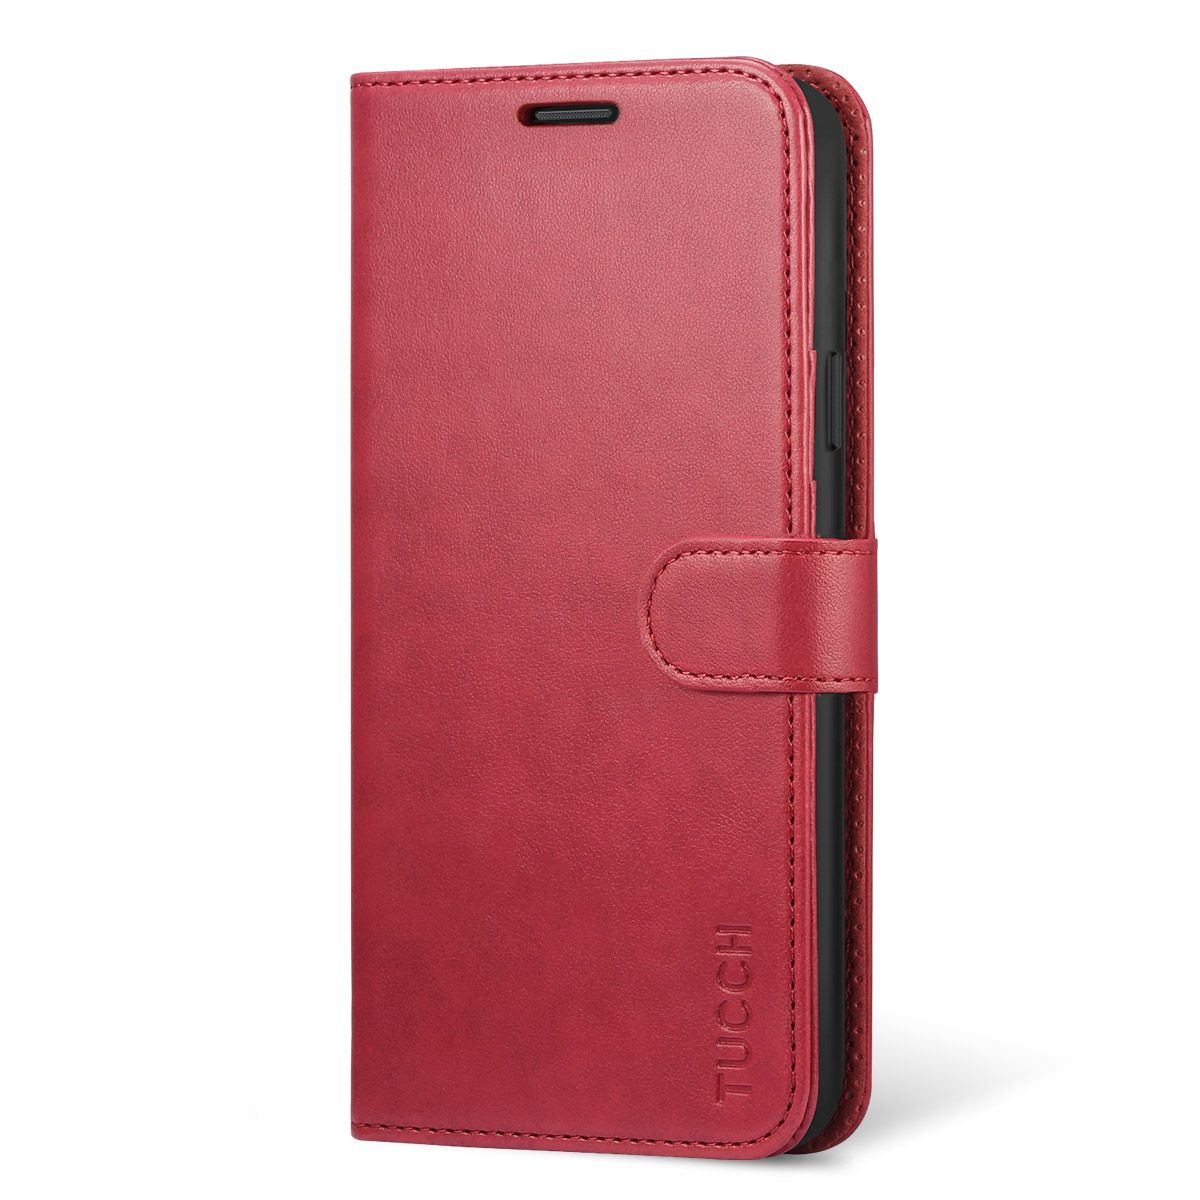 premium selection 58784 bd4a3 TUCCH Samsung Galaxy Note 9 Wallet Case - Leather Cover, Stand, Flip Style  - Red